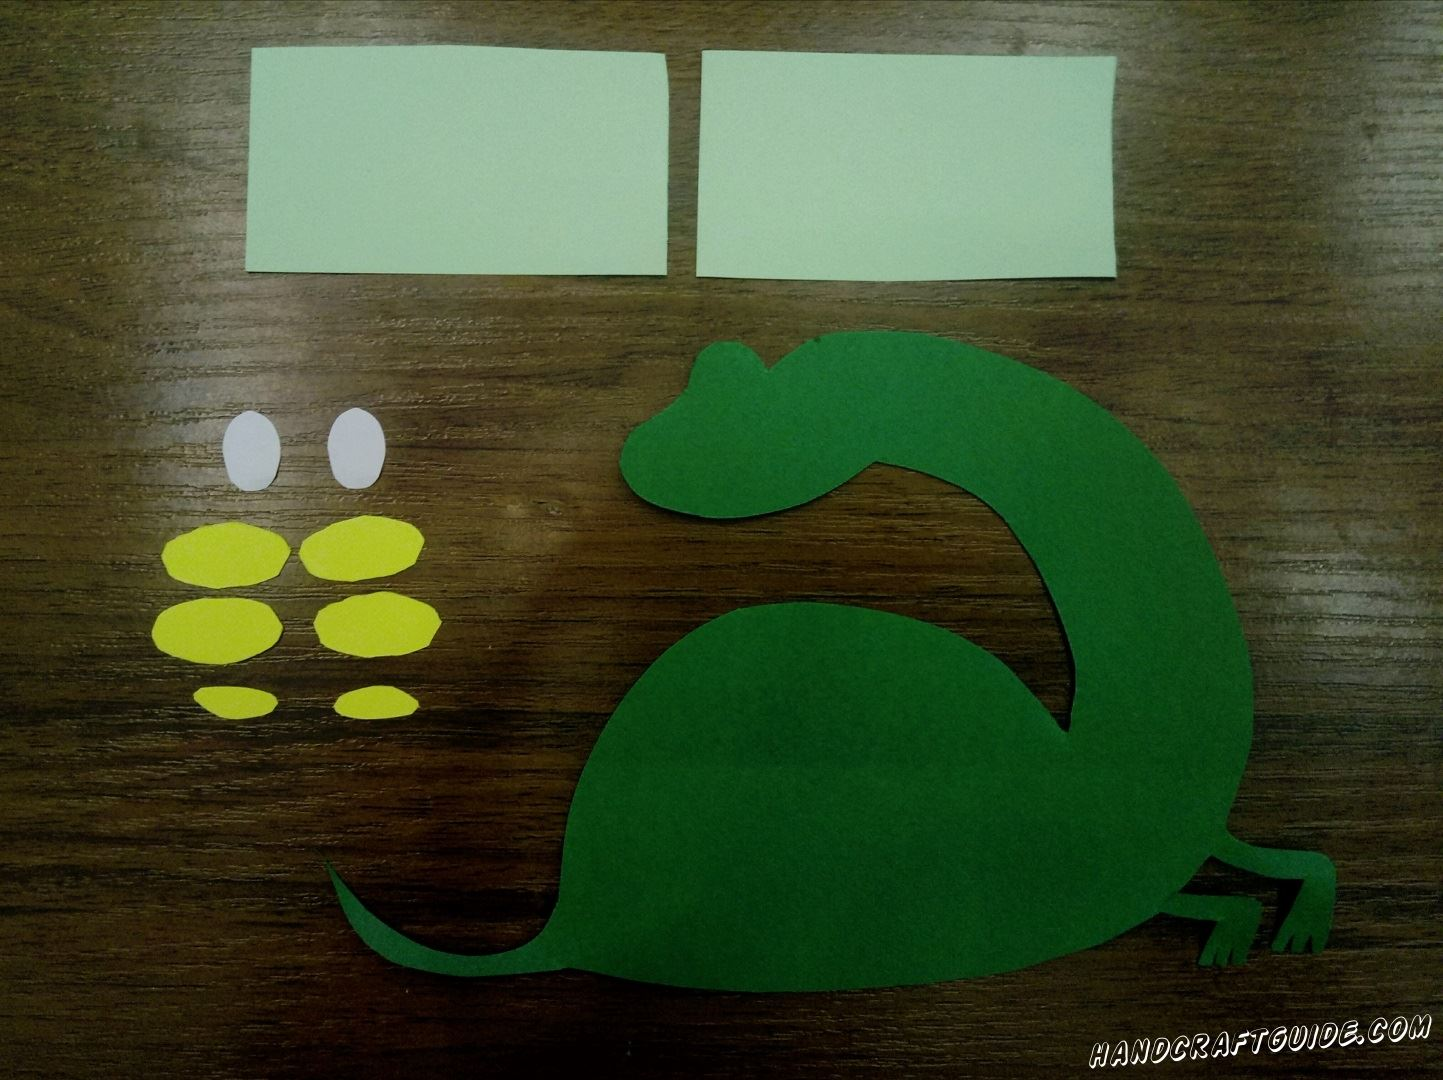 To begin with take green paper. Draw a dino on it and then cut out what you've drawed. You can see an example on the photo. The next step is to cut out yellow ovals, you can make them different sizes. Then take the turquoise paper and cut out 2 small rectangles. In the end cut out 2 white ovals for the eyes.